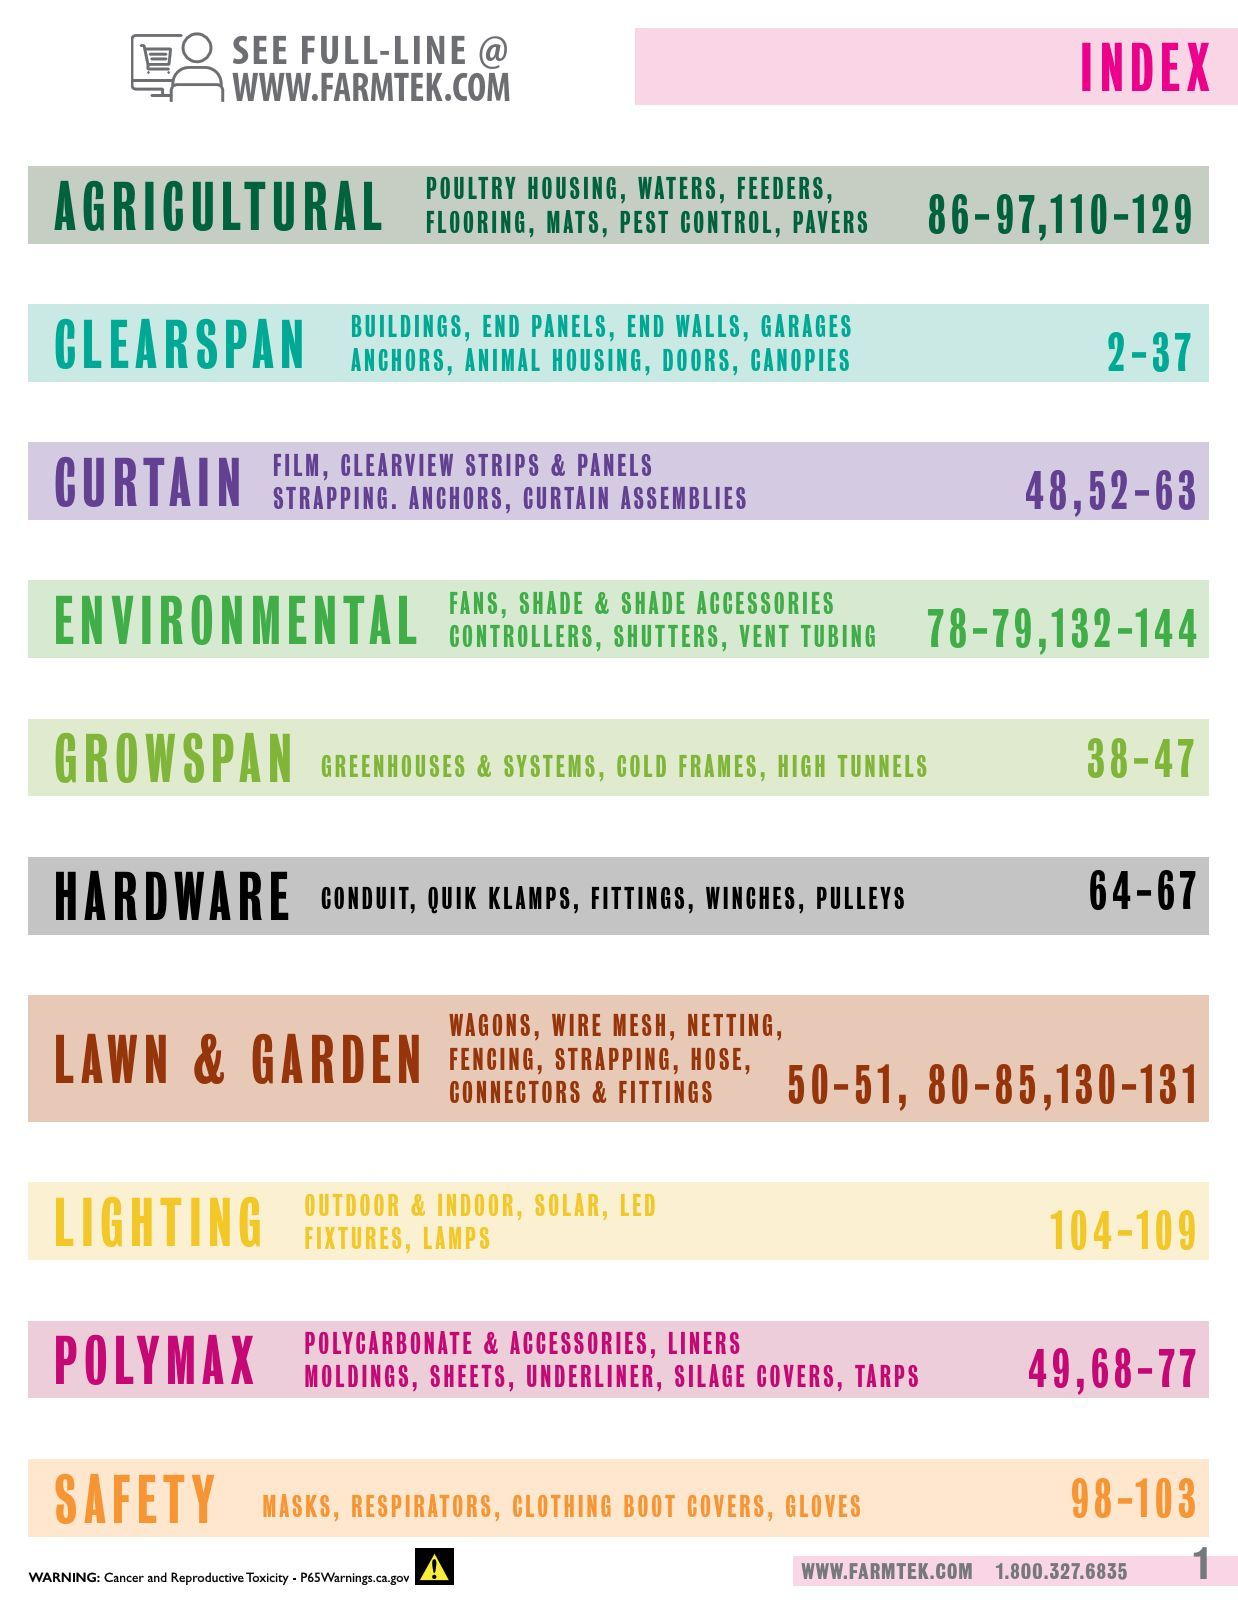 farmtek hydroponic fodder systems, farming \u0026 growing suppliesfarmtek hydroponic fodder systems, farming \u0026 growing supplies, hoop barns, poultry \u0026 livestock equipment, high tunnels, greenhouses \u0026 more